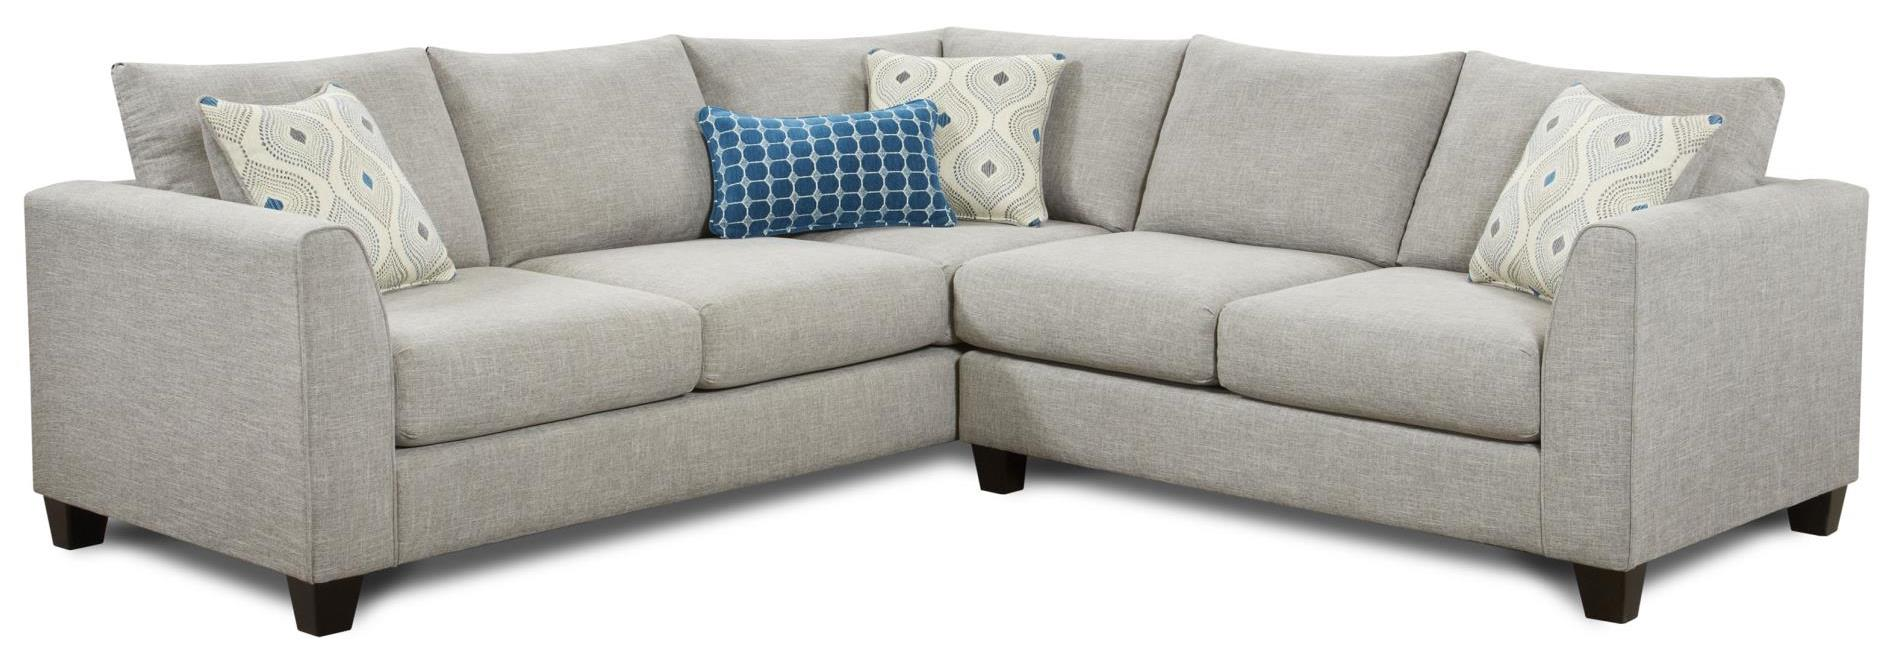 2800 2-Piece Sectional by Fusion Furniture at Miller Waldrop Furniture and Decor